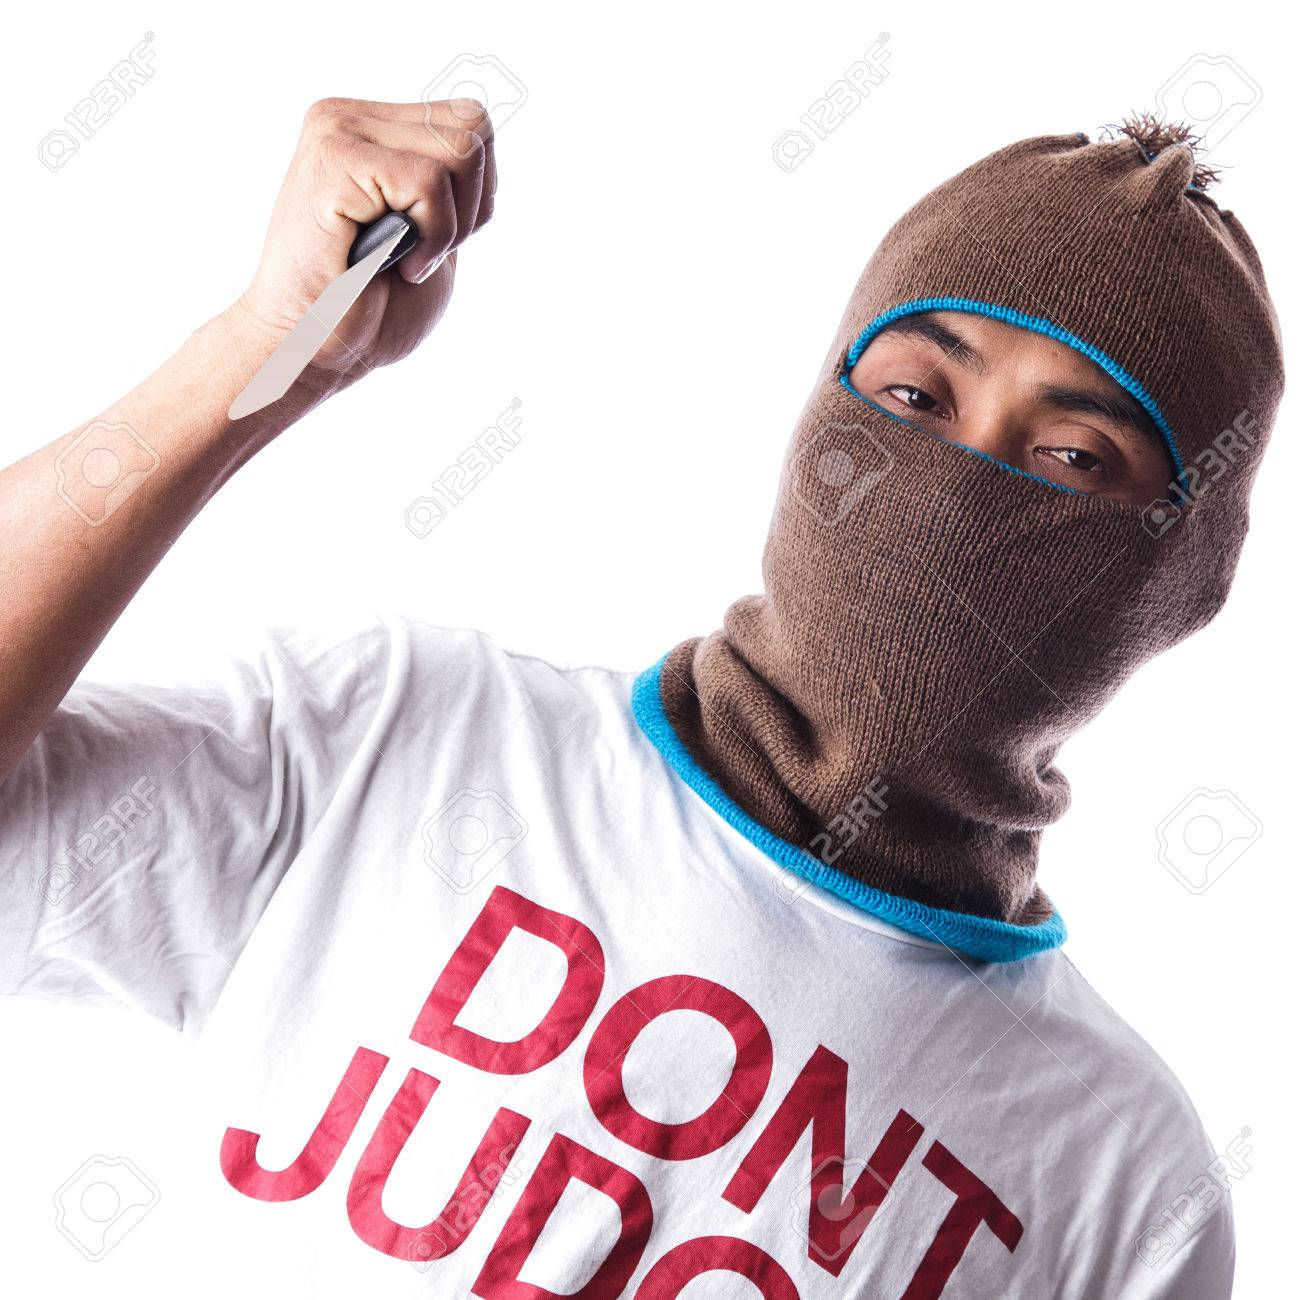 Man in a mask holding knife Stock Photo - 25081494